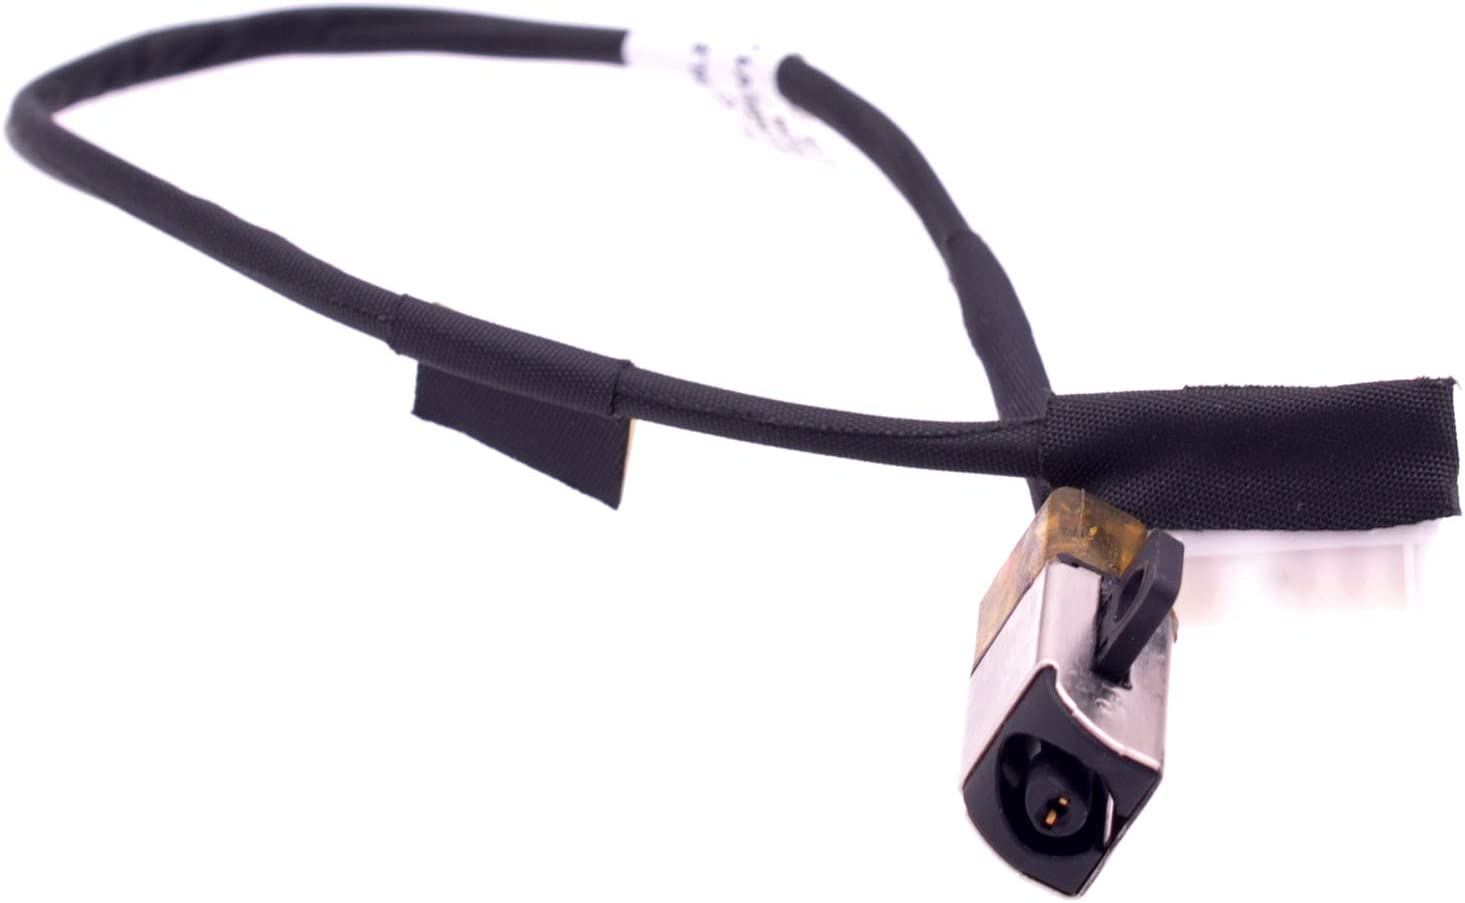 Deal4GO DC Power Jack Cable Harness Port Replacement for Dell Inspiron 15 5565 5567 17 5765 5767 DC30100YN00 0R6RKM R6RKM BAL30